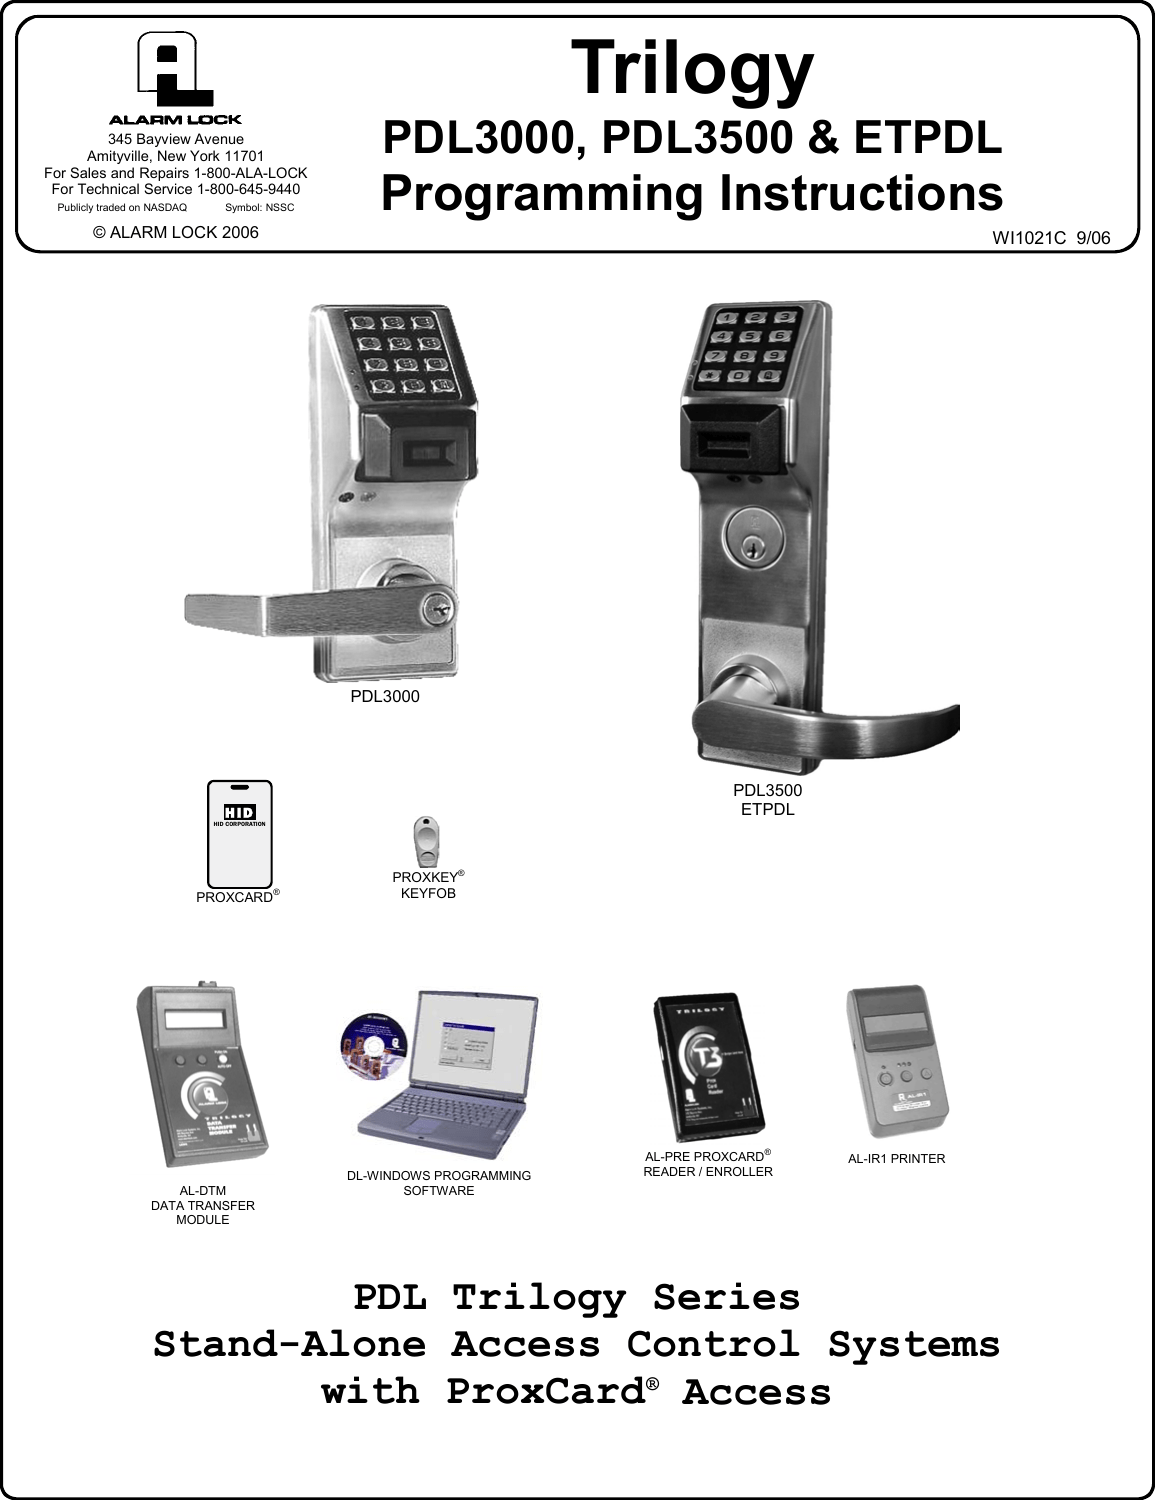 Alarm Lock Trilogy Pdl3000 Programming Instructions Manual